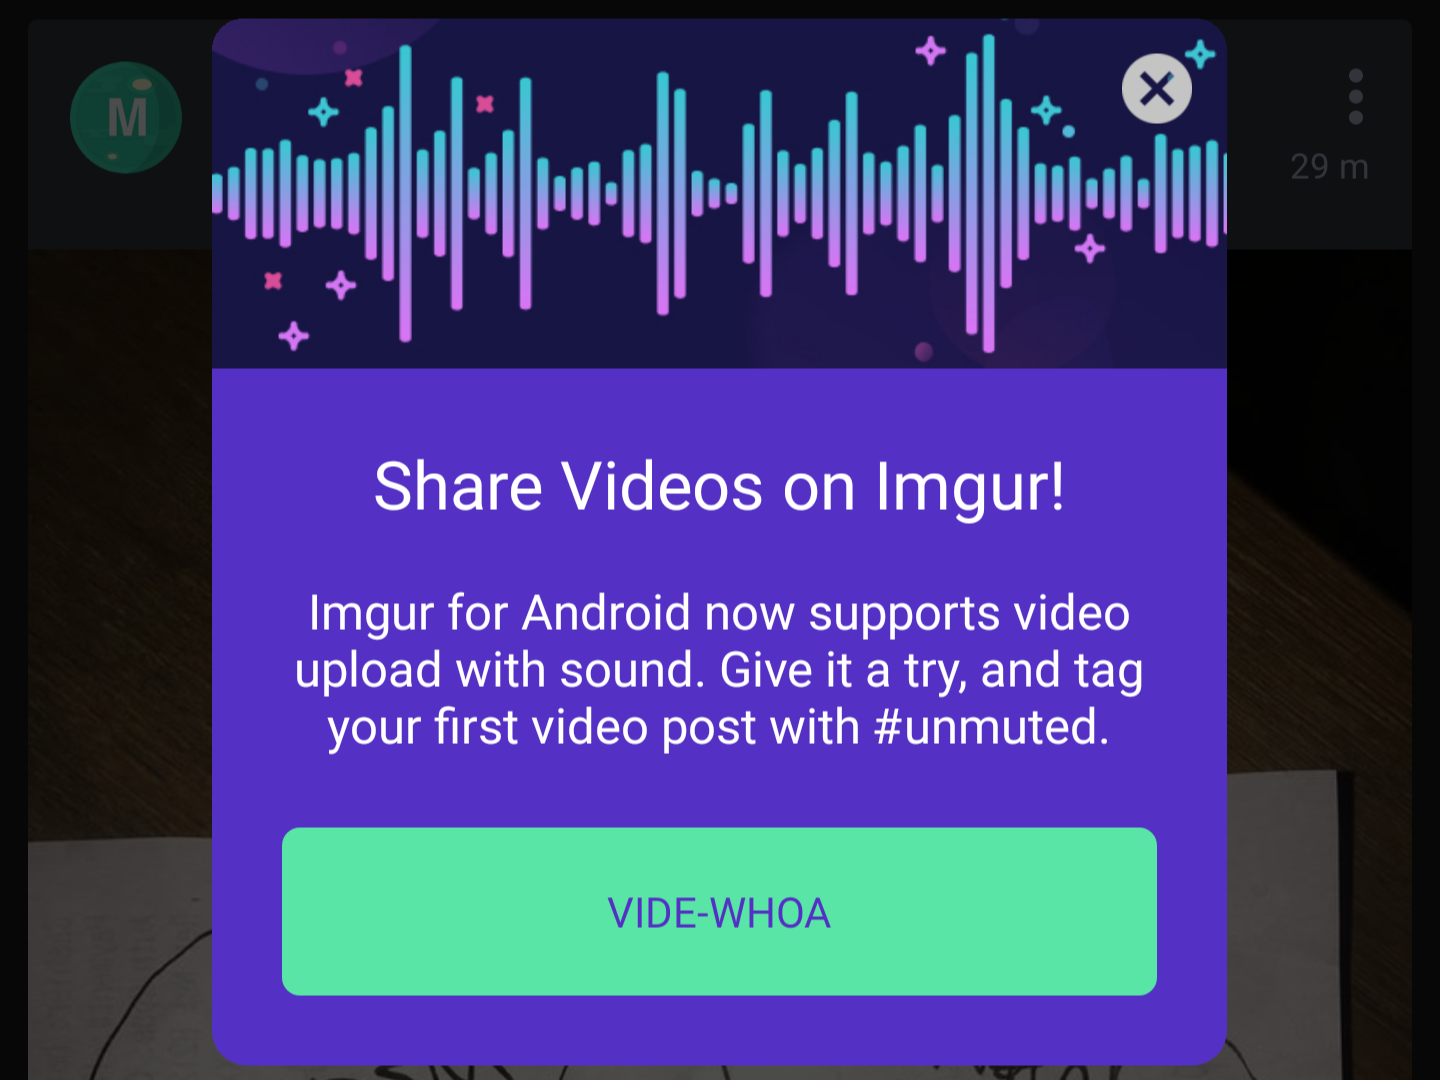 Imgur app update adds video upload with sound